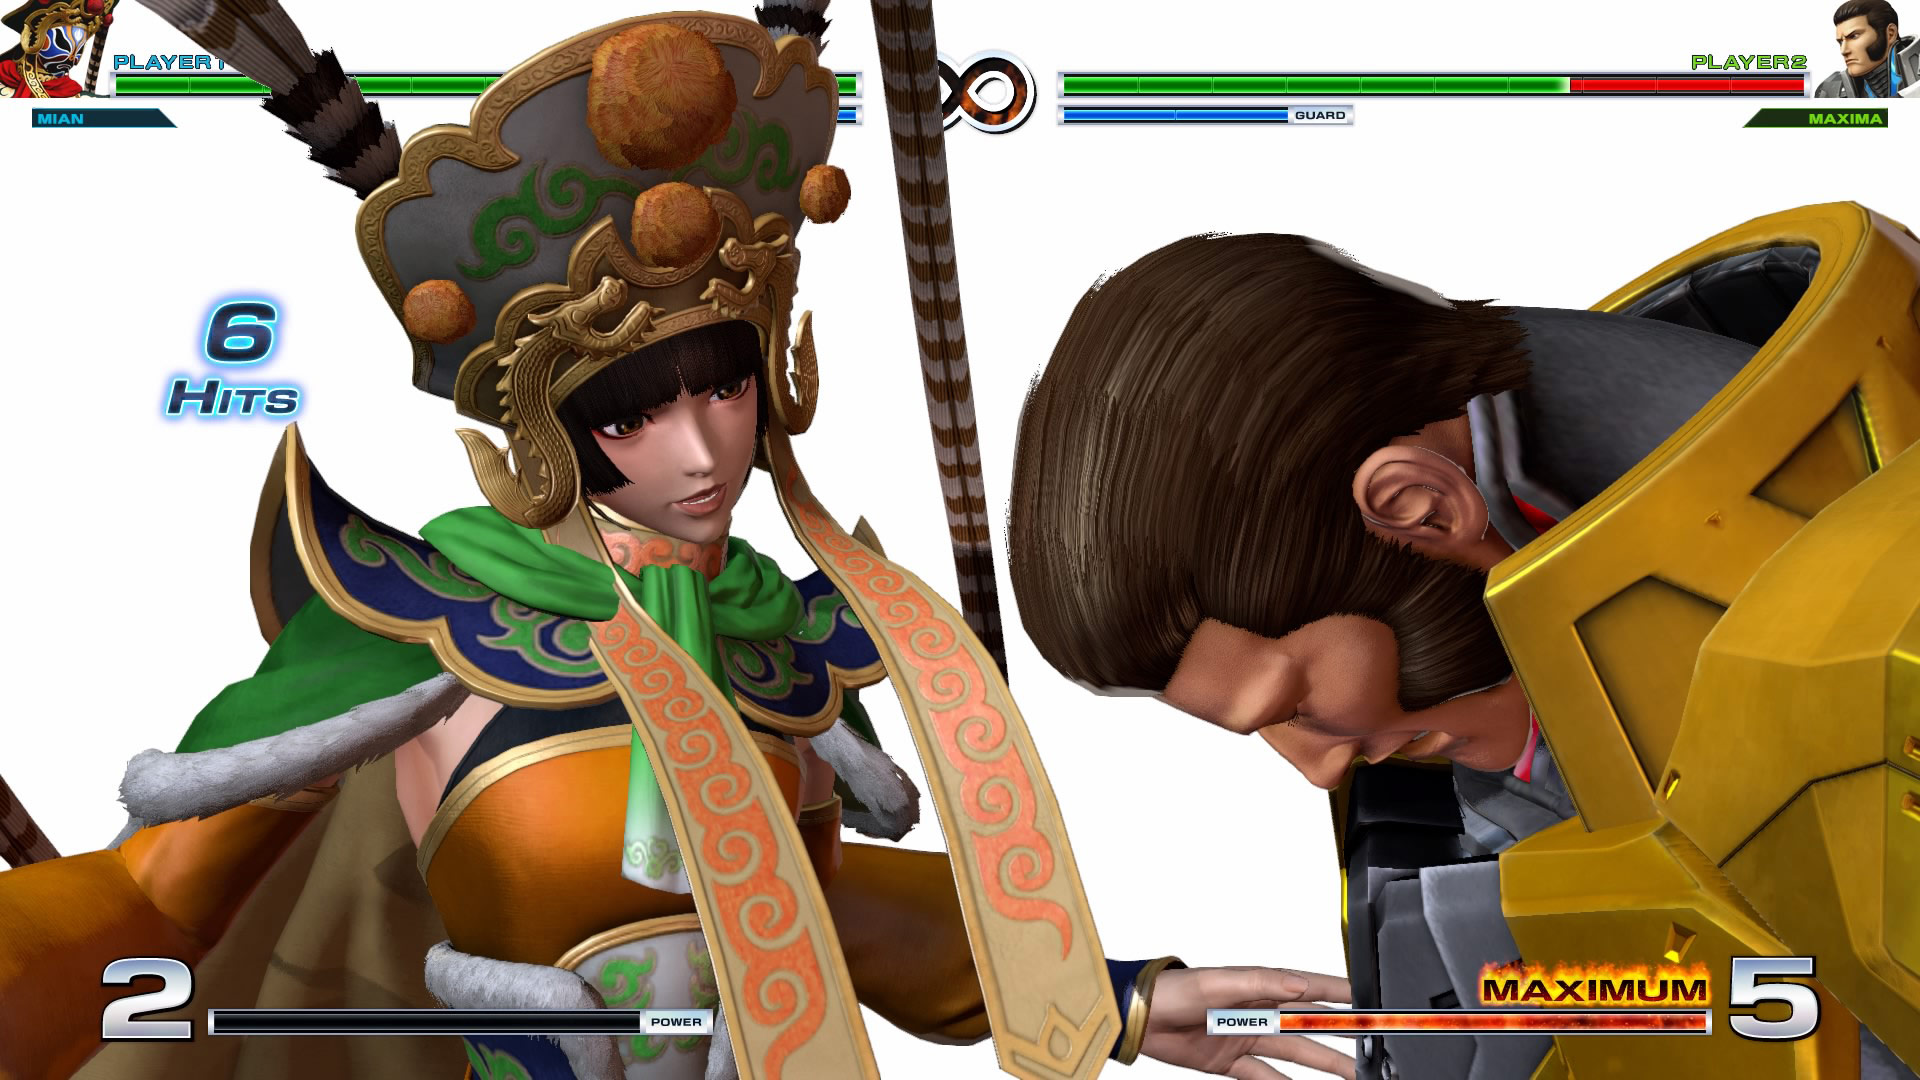 King of Fighters 14 1.10 graphics update 17 out of 60 image gallery